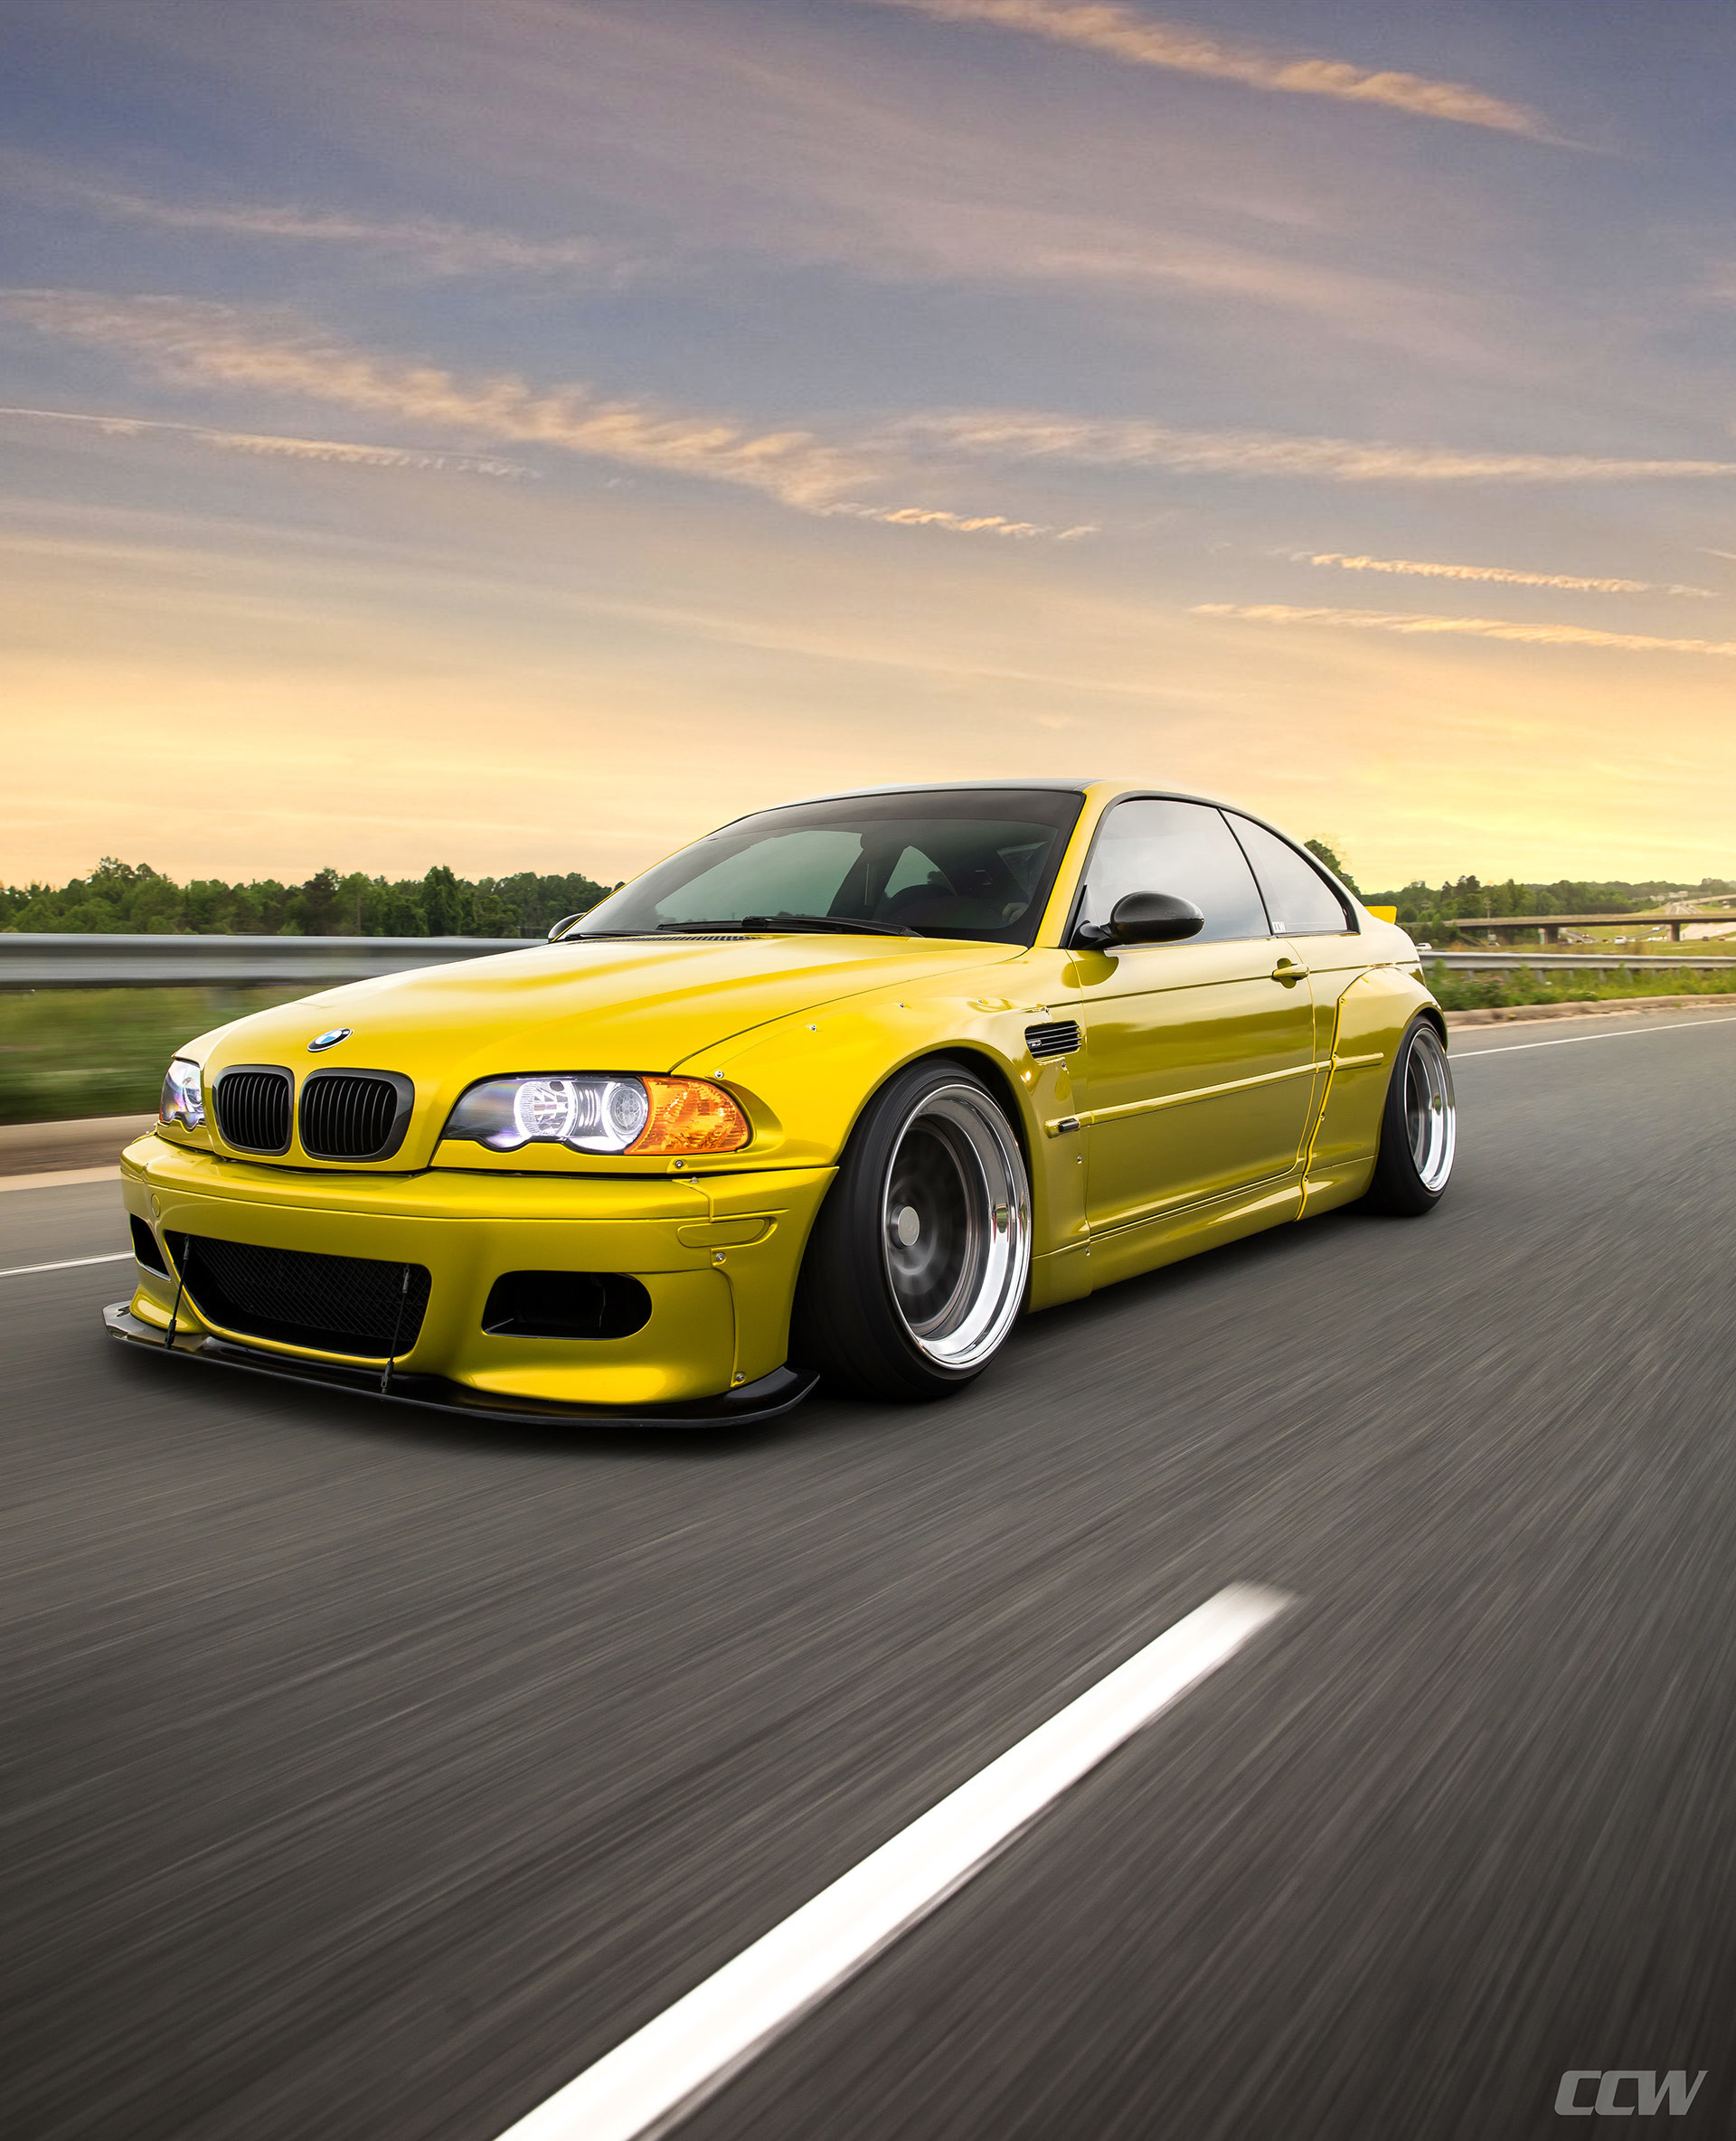 1920x2368 Phoenix Yellow BMW E46 M3 - CCW Classic Wheels Wallpaper